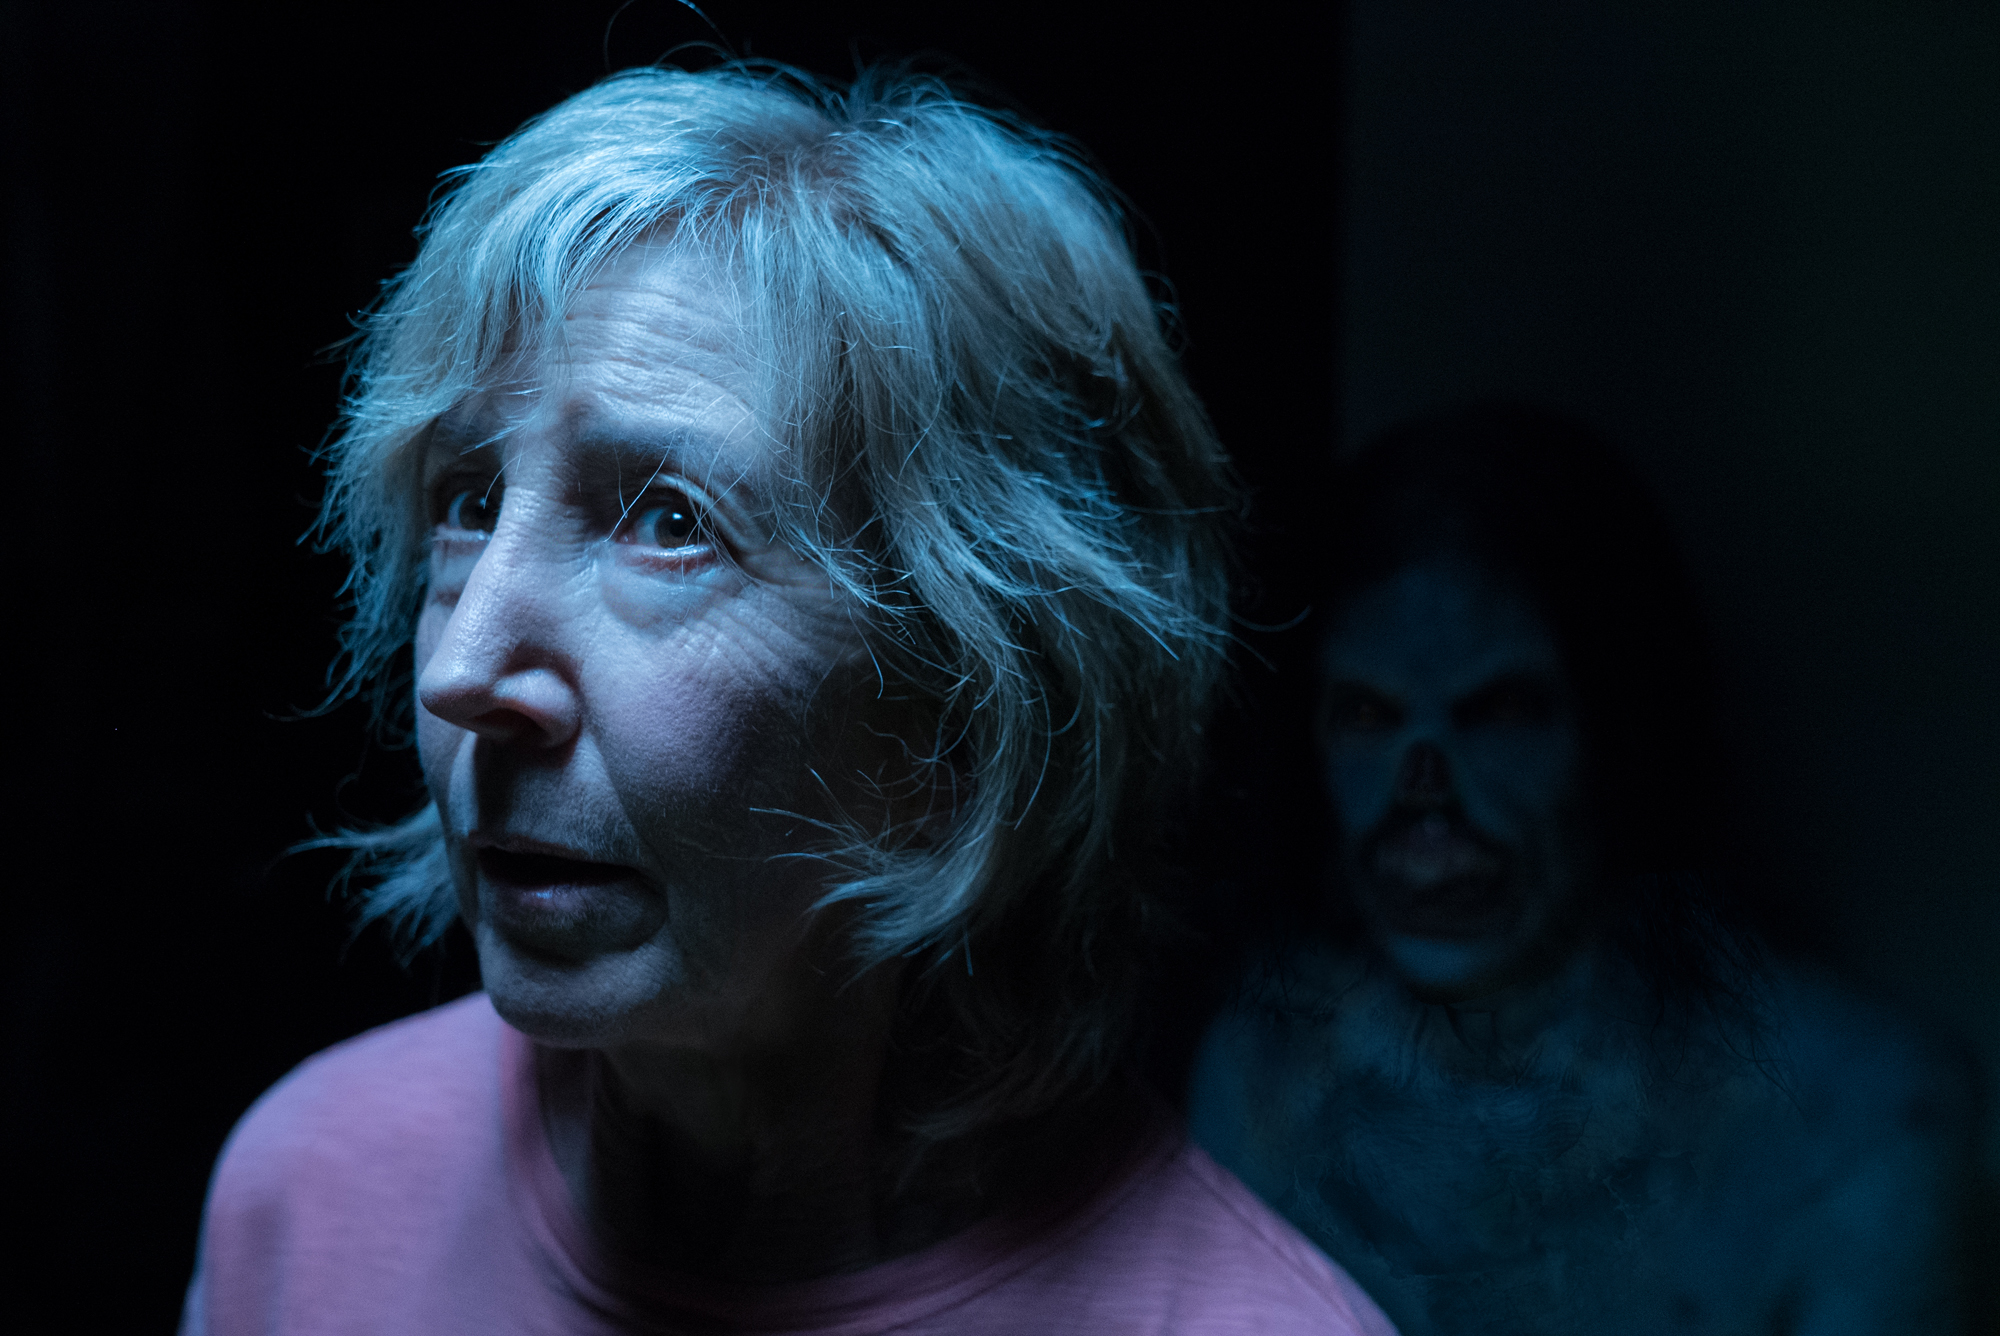 Lin Shaye nude (43 images) Selfie, Snapchat, swimsuit